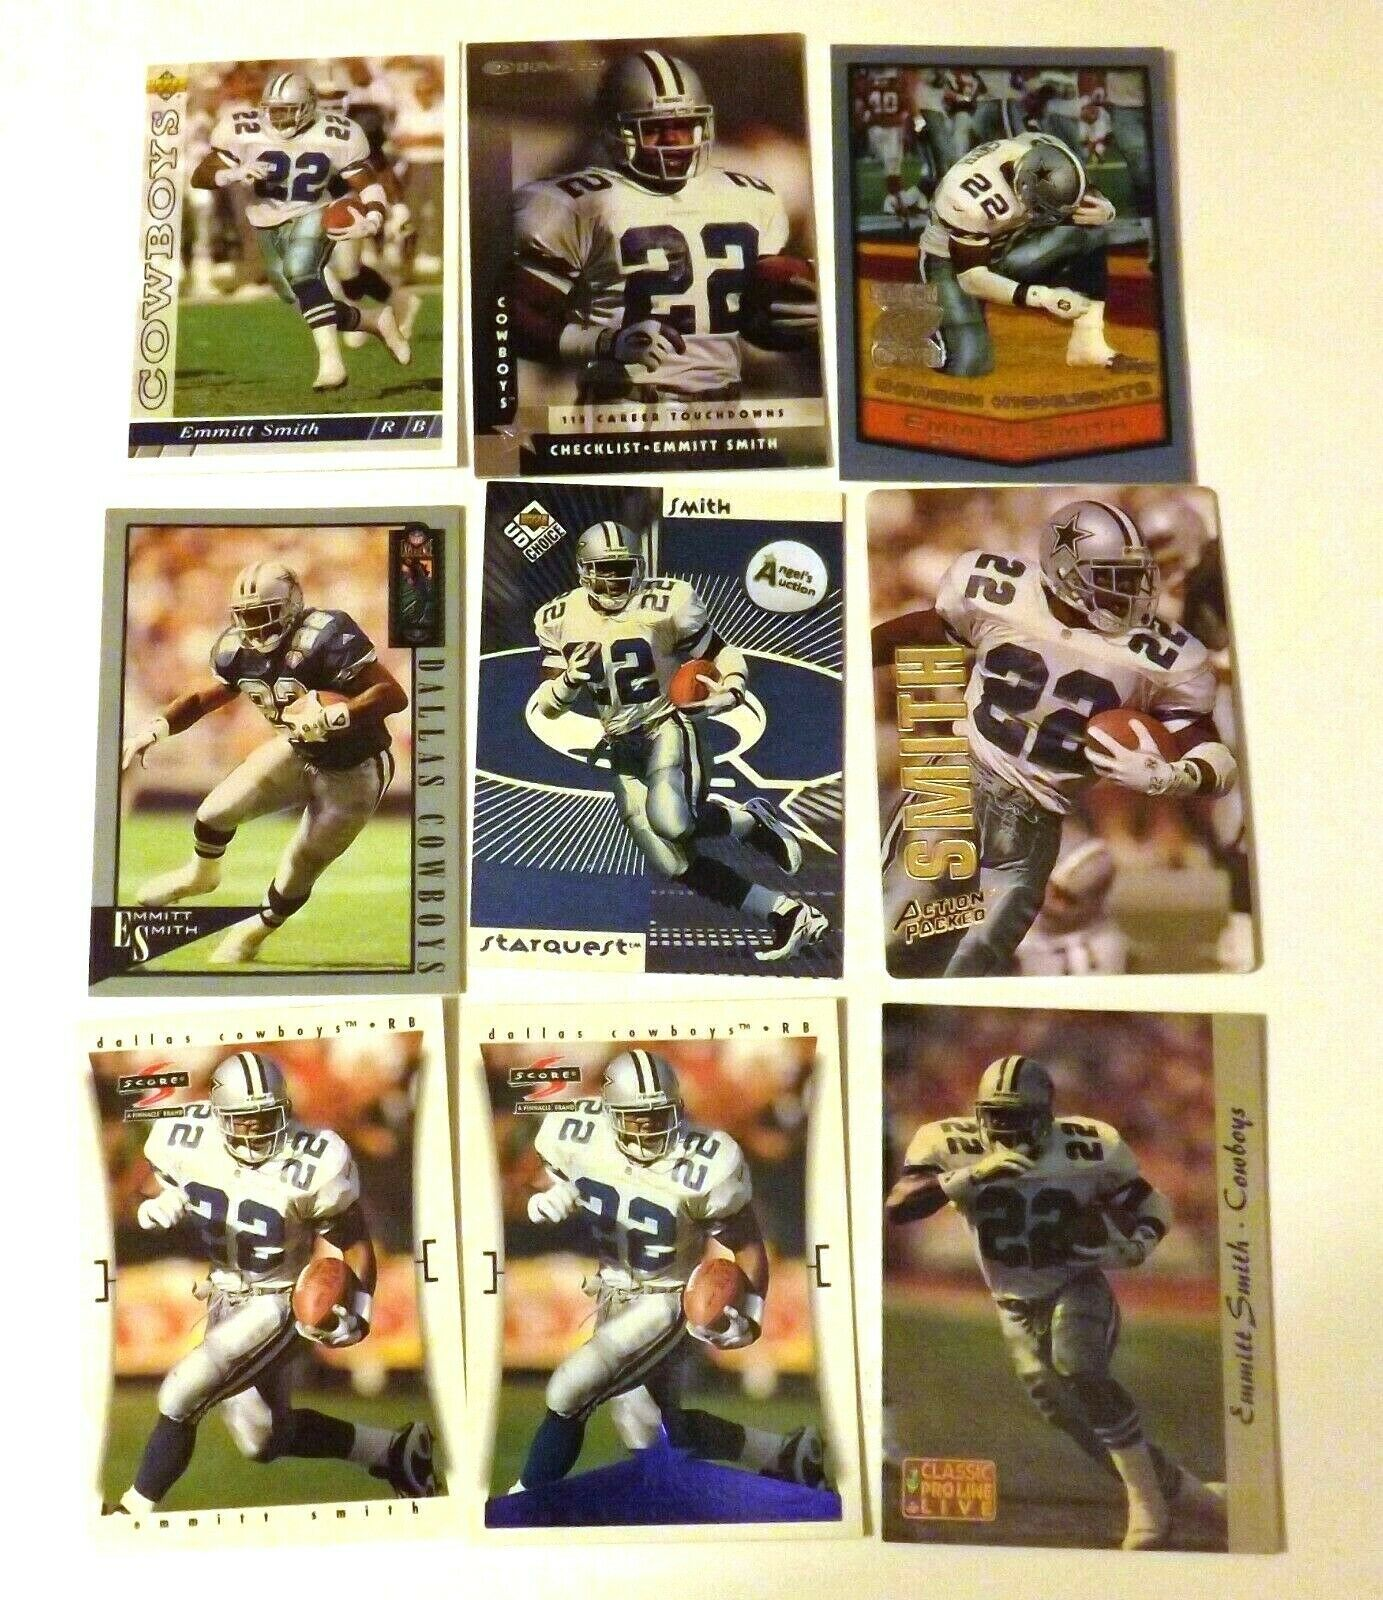 Emmitt Smith #22 Dallas Cowboys Football Trading Cards AA-191704 Vintage Collect